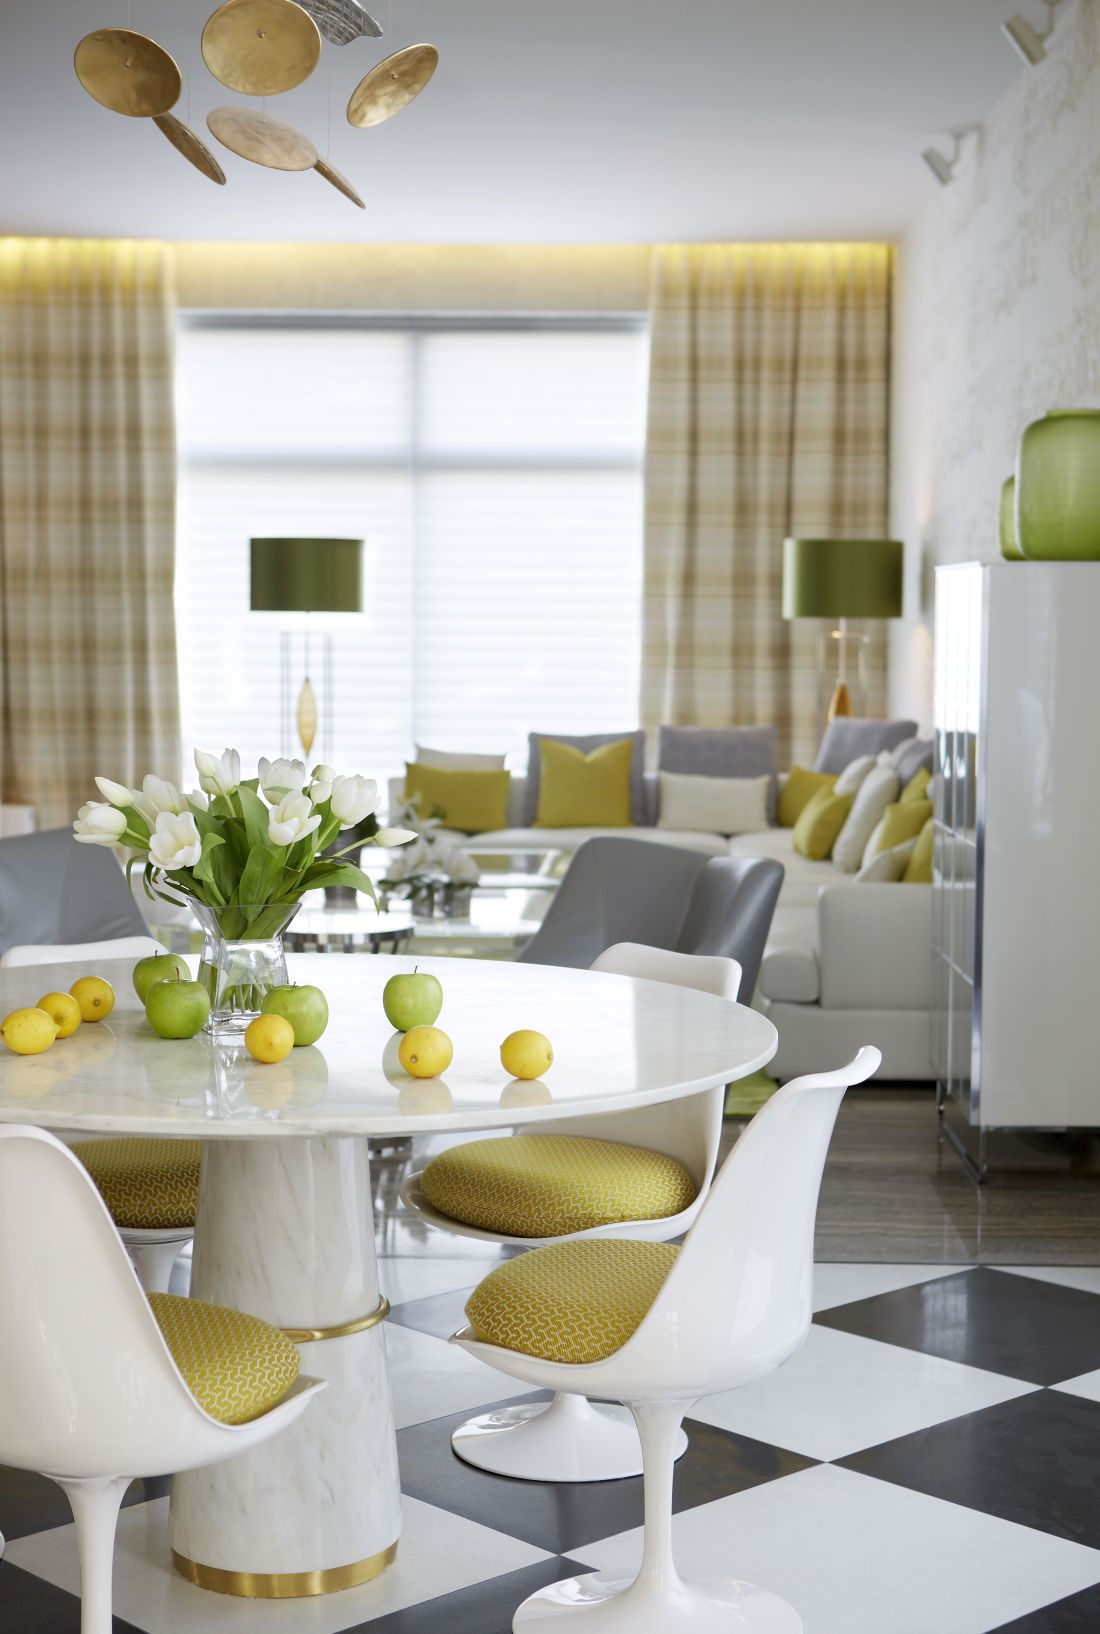 8brabbu-design-forces_yellow-kitchen-details-featuring-agra-white-marble-dining-table.jpg